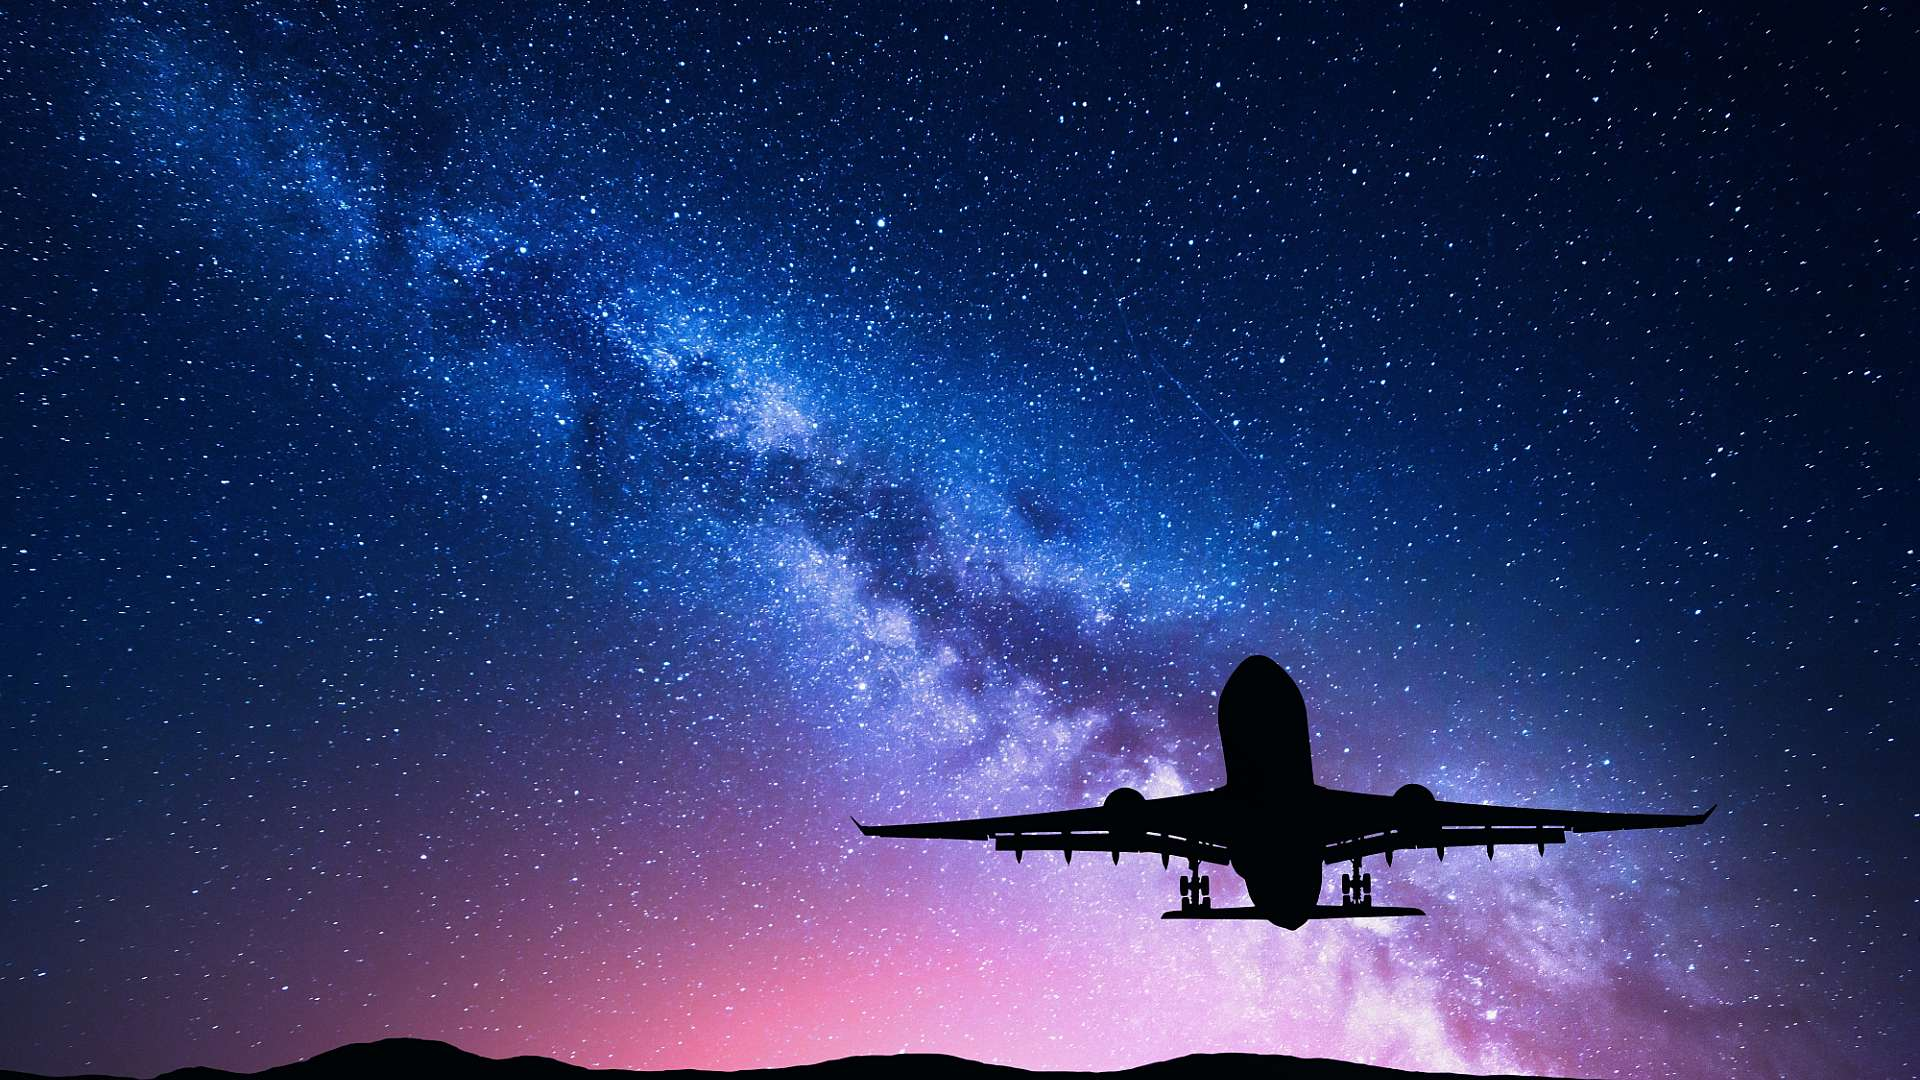 The Centre for Process Innovation is part of a consortium to improve airtight bonding in OLED lighting for aerospace and defence applications